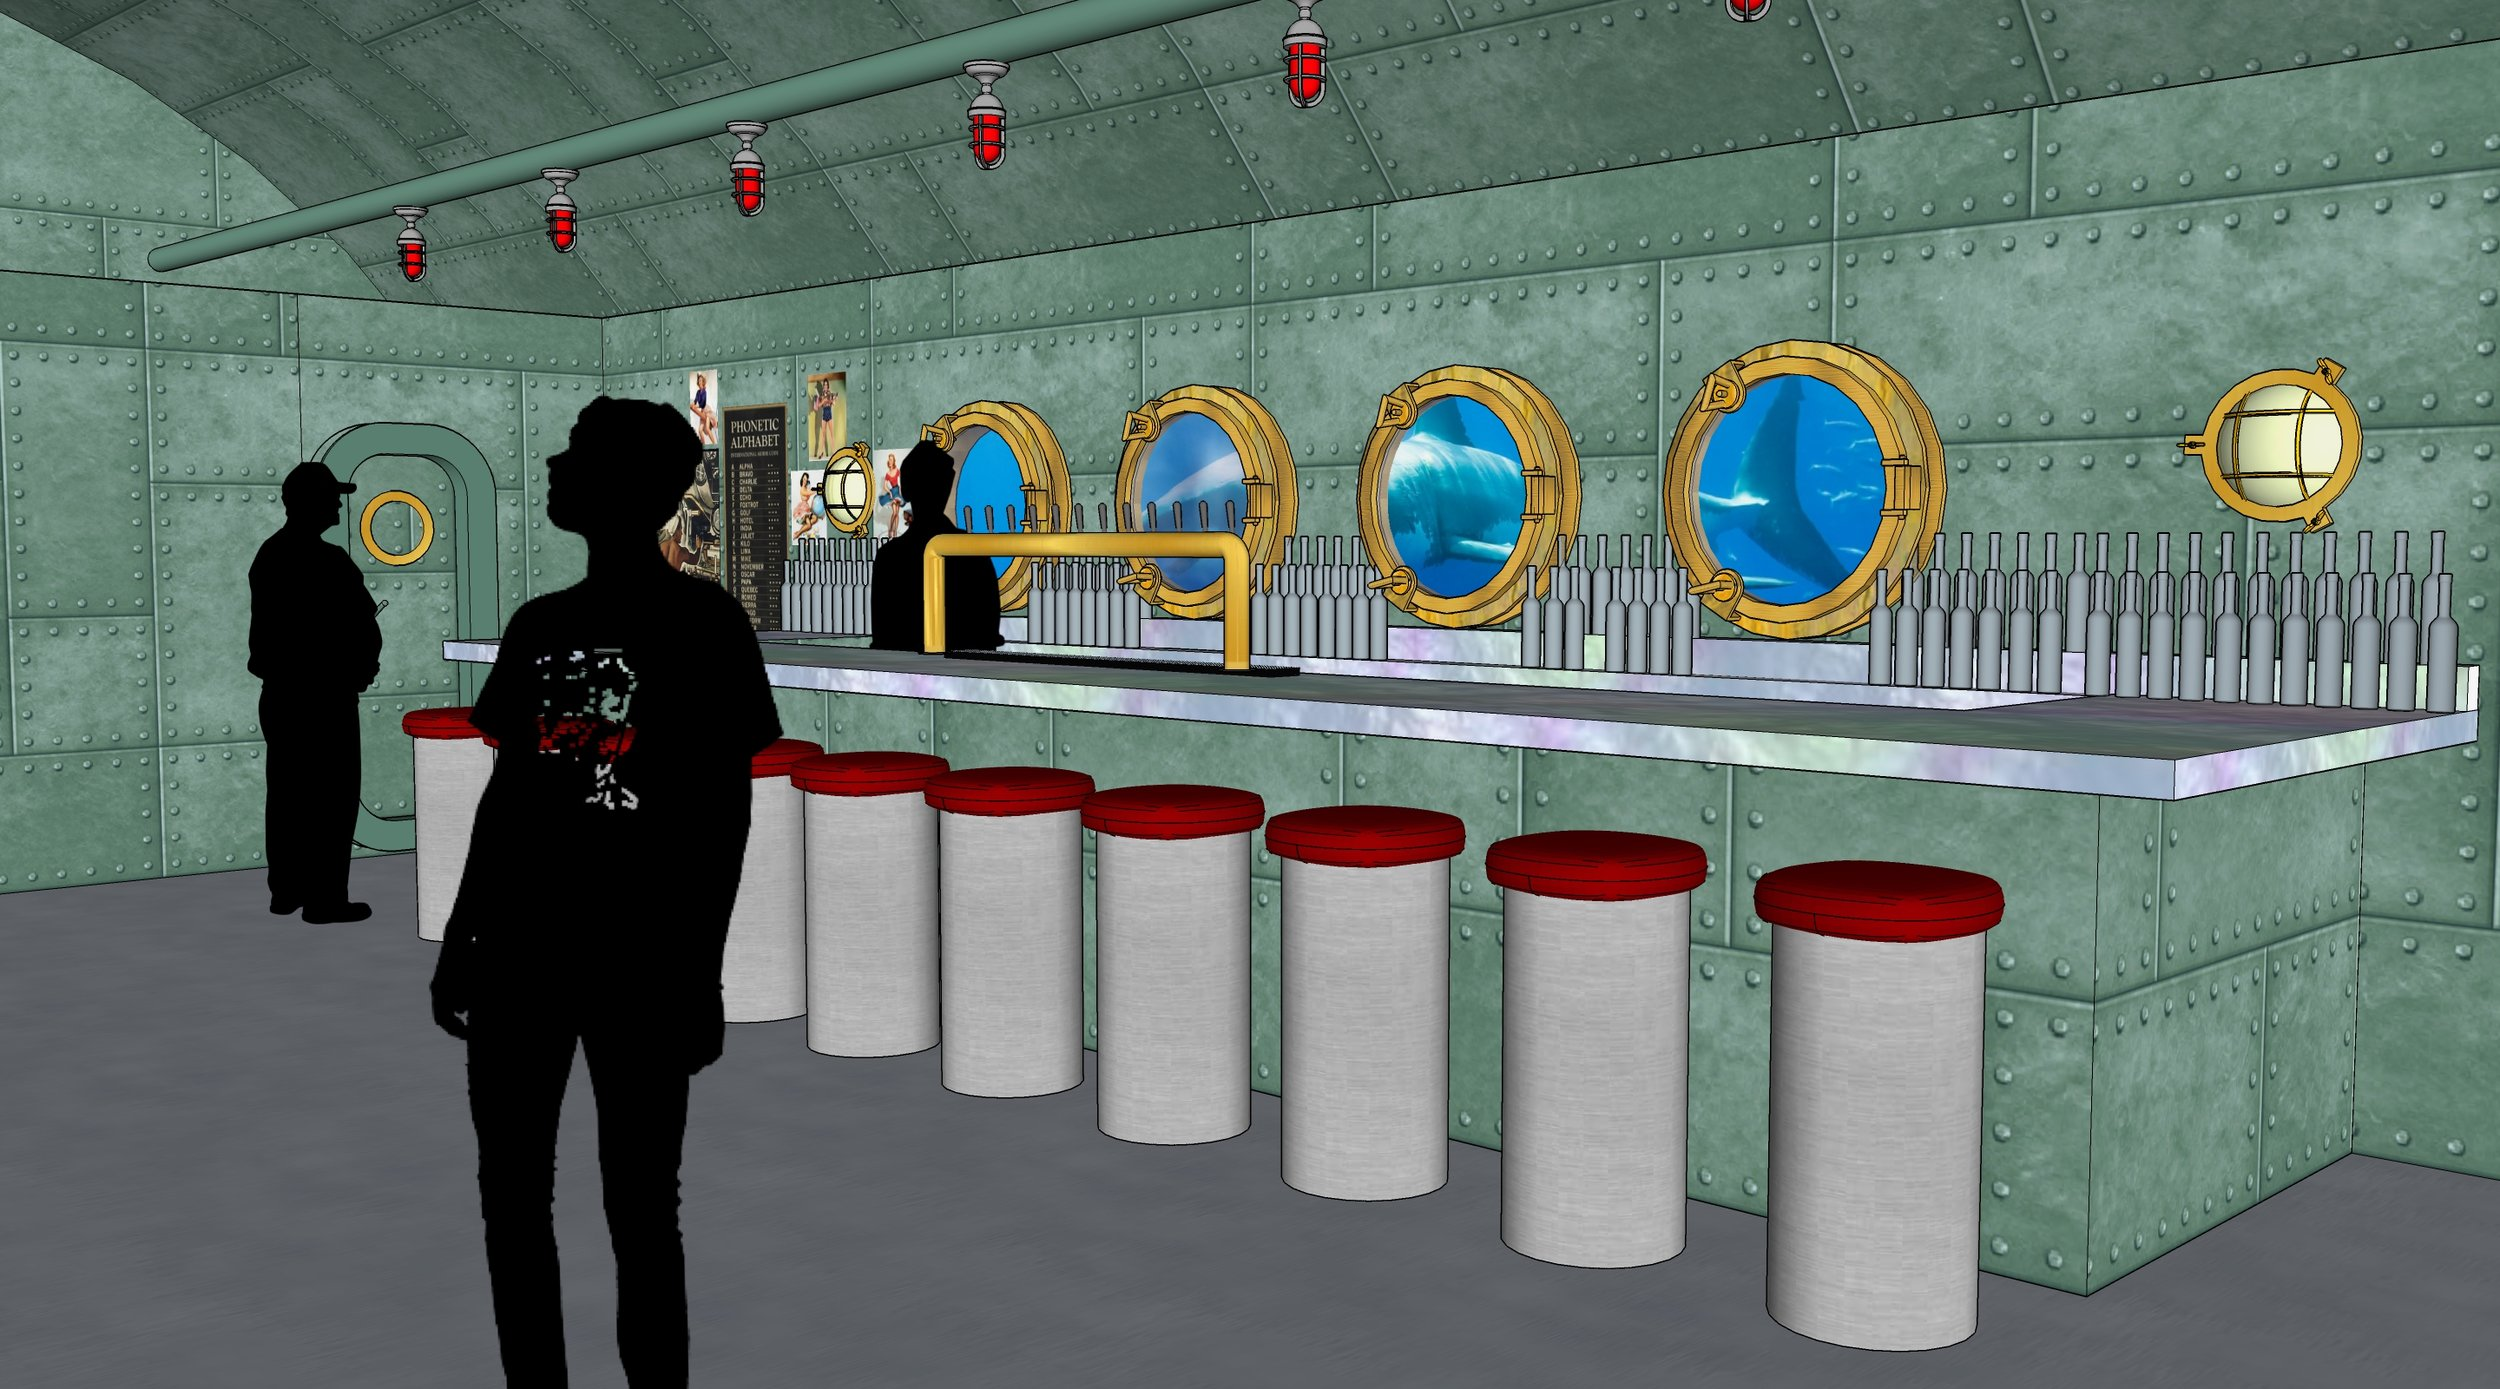 Submarine_Bar8_3.jpg